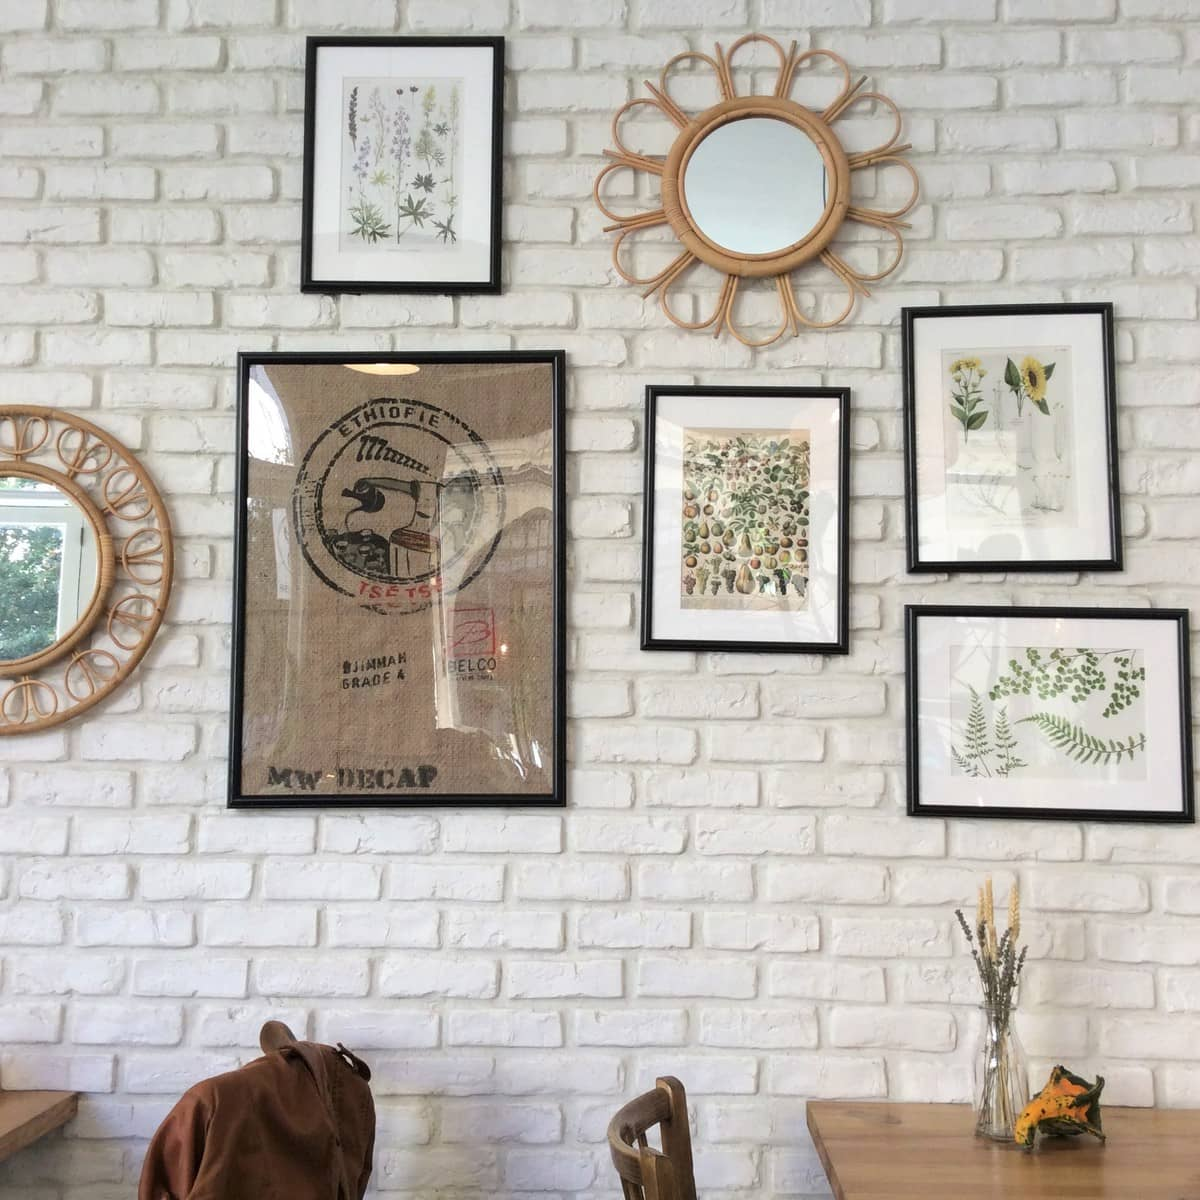 Pretty interior of Kitchen Garden vegetarian restaurant in Bordeaux, France - white brick walls, plants and gourds on the tables, flower-shaped mirrors and plant diagrams on the walls